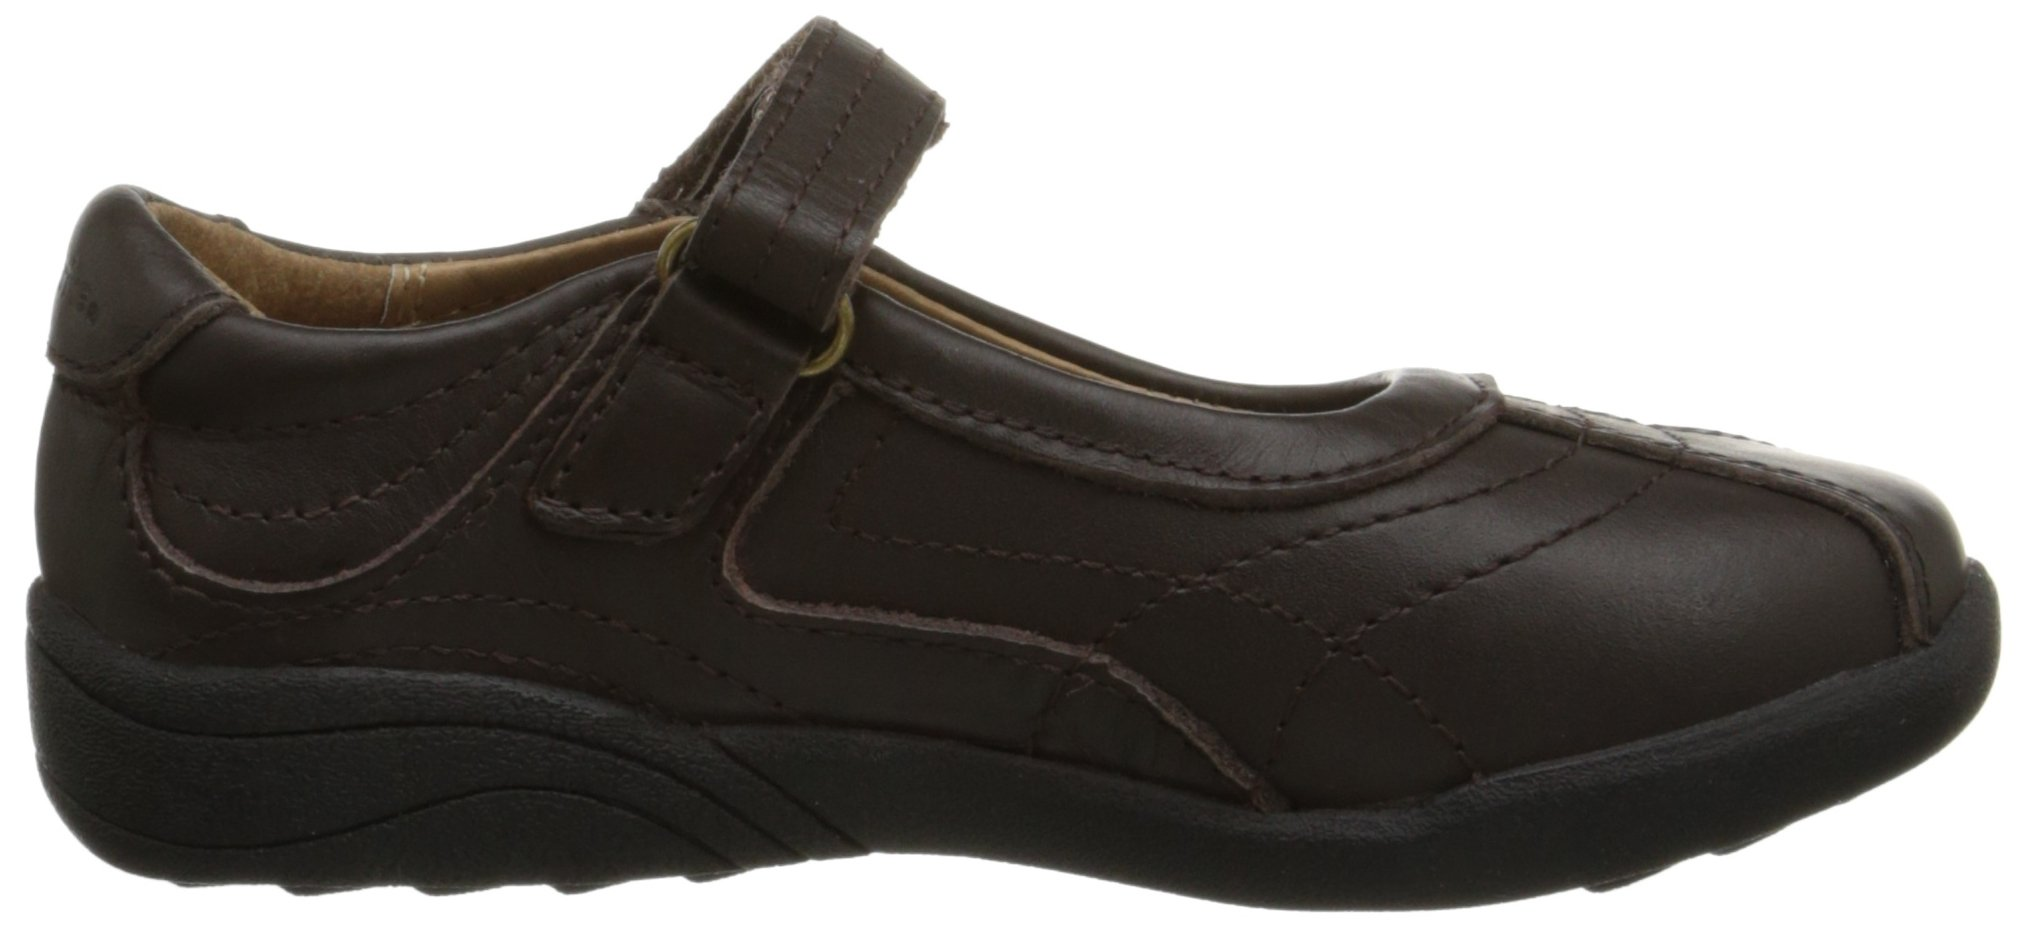 Stride Rite Claire Mary Jane (Toddler/Little Kid/Big Kid),Brown,13 M US Little Kid by Stride Rite (Image #7)